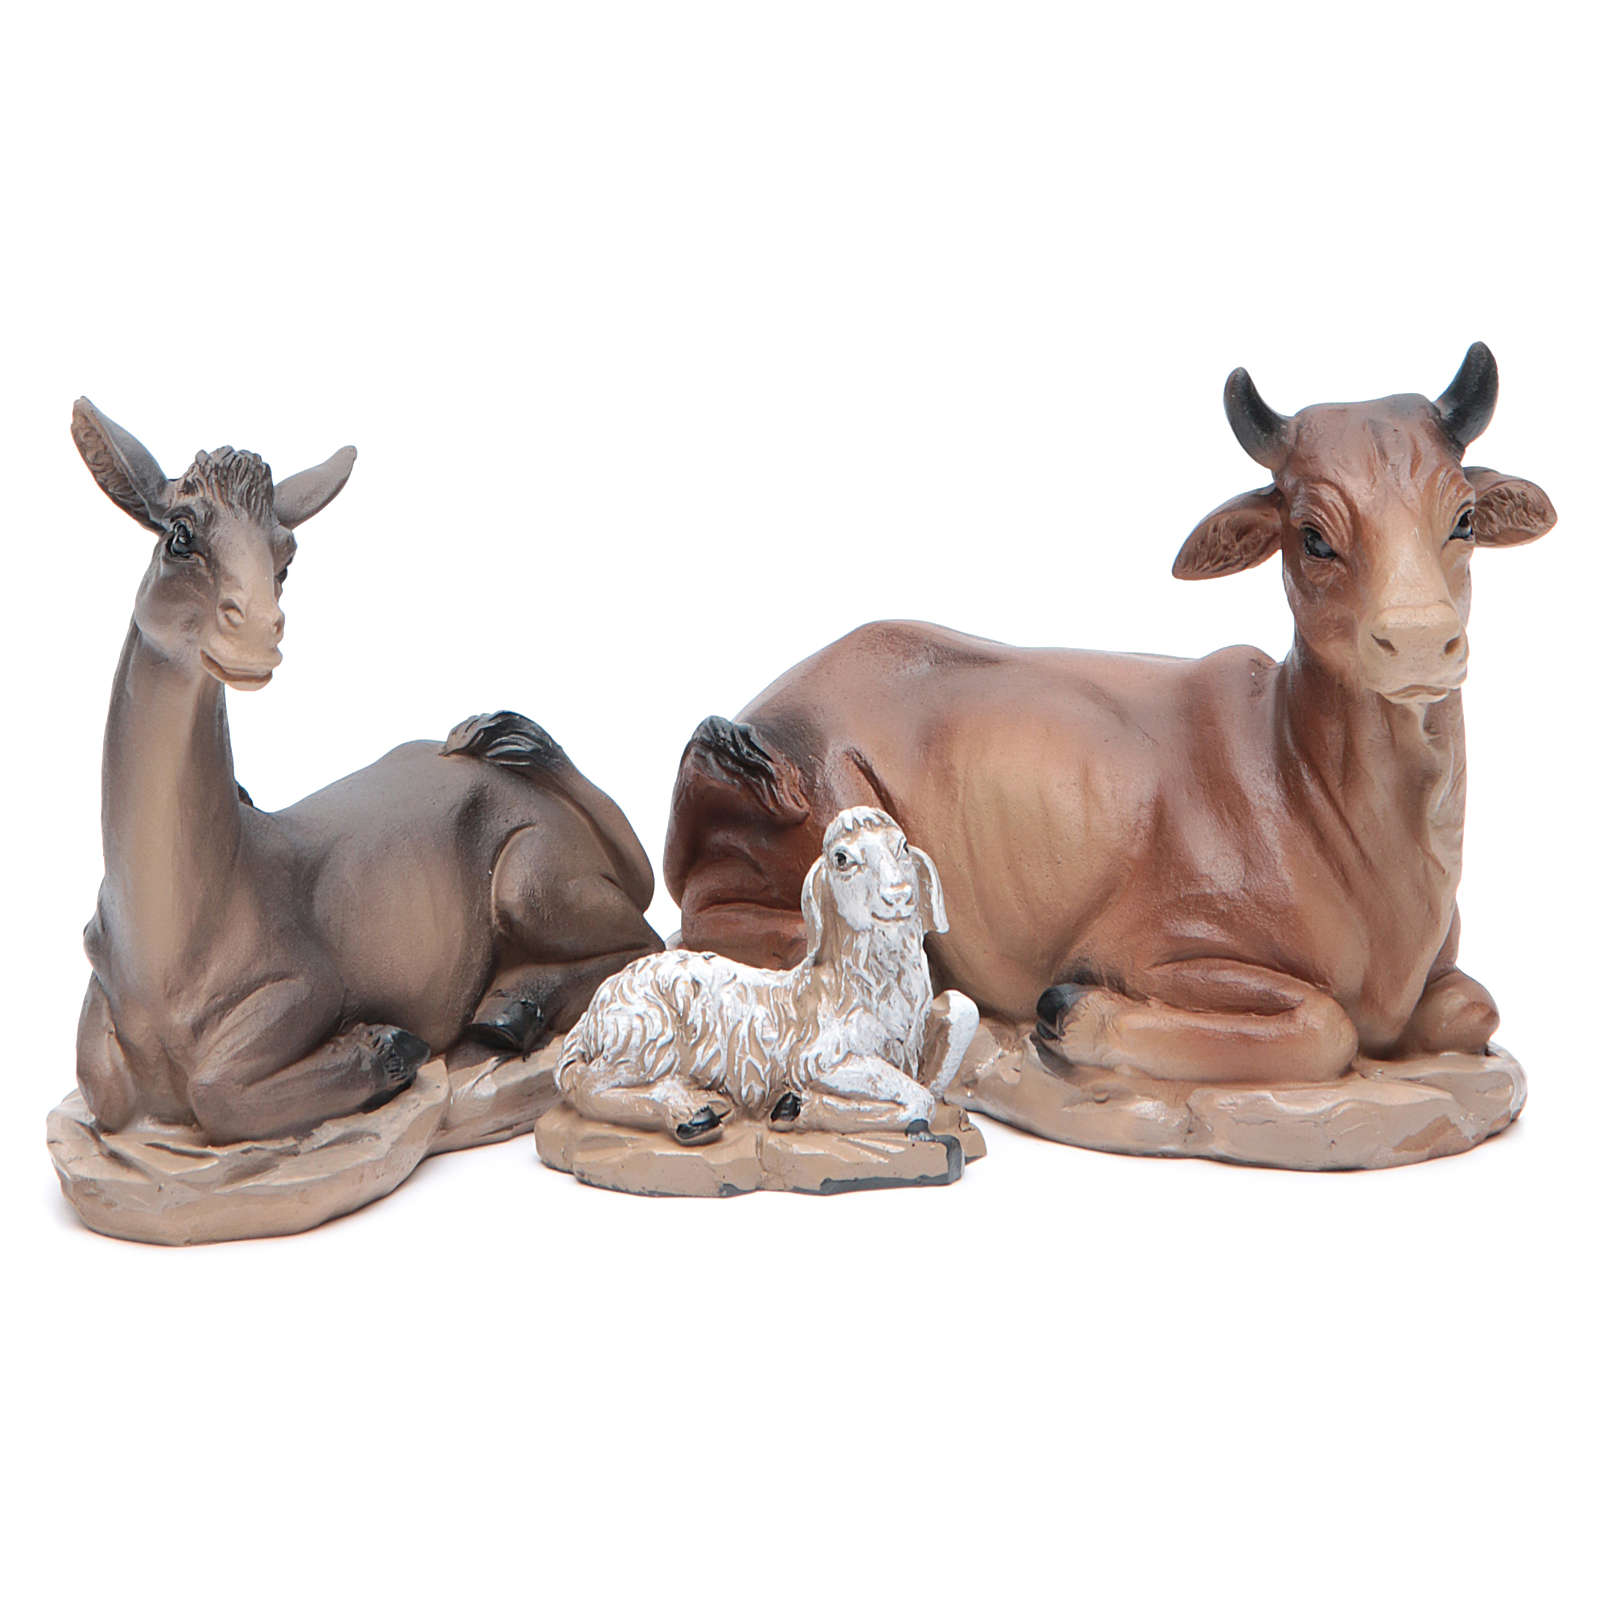 Resin nativity set measuring 20.5cm, 11 figurines with golden finish 4